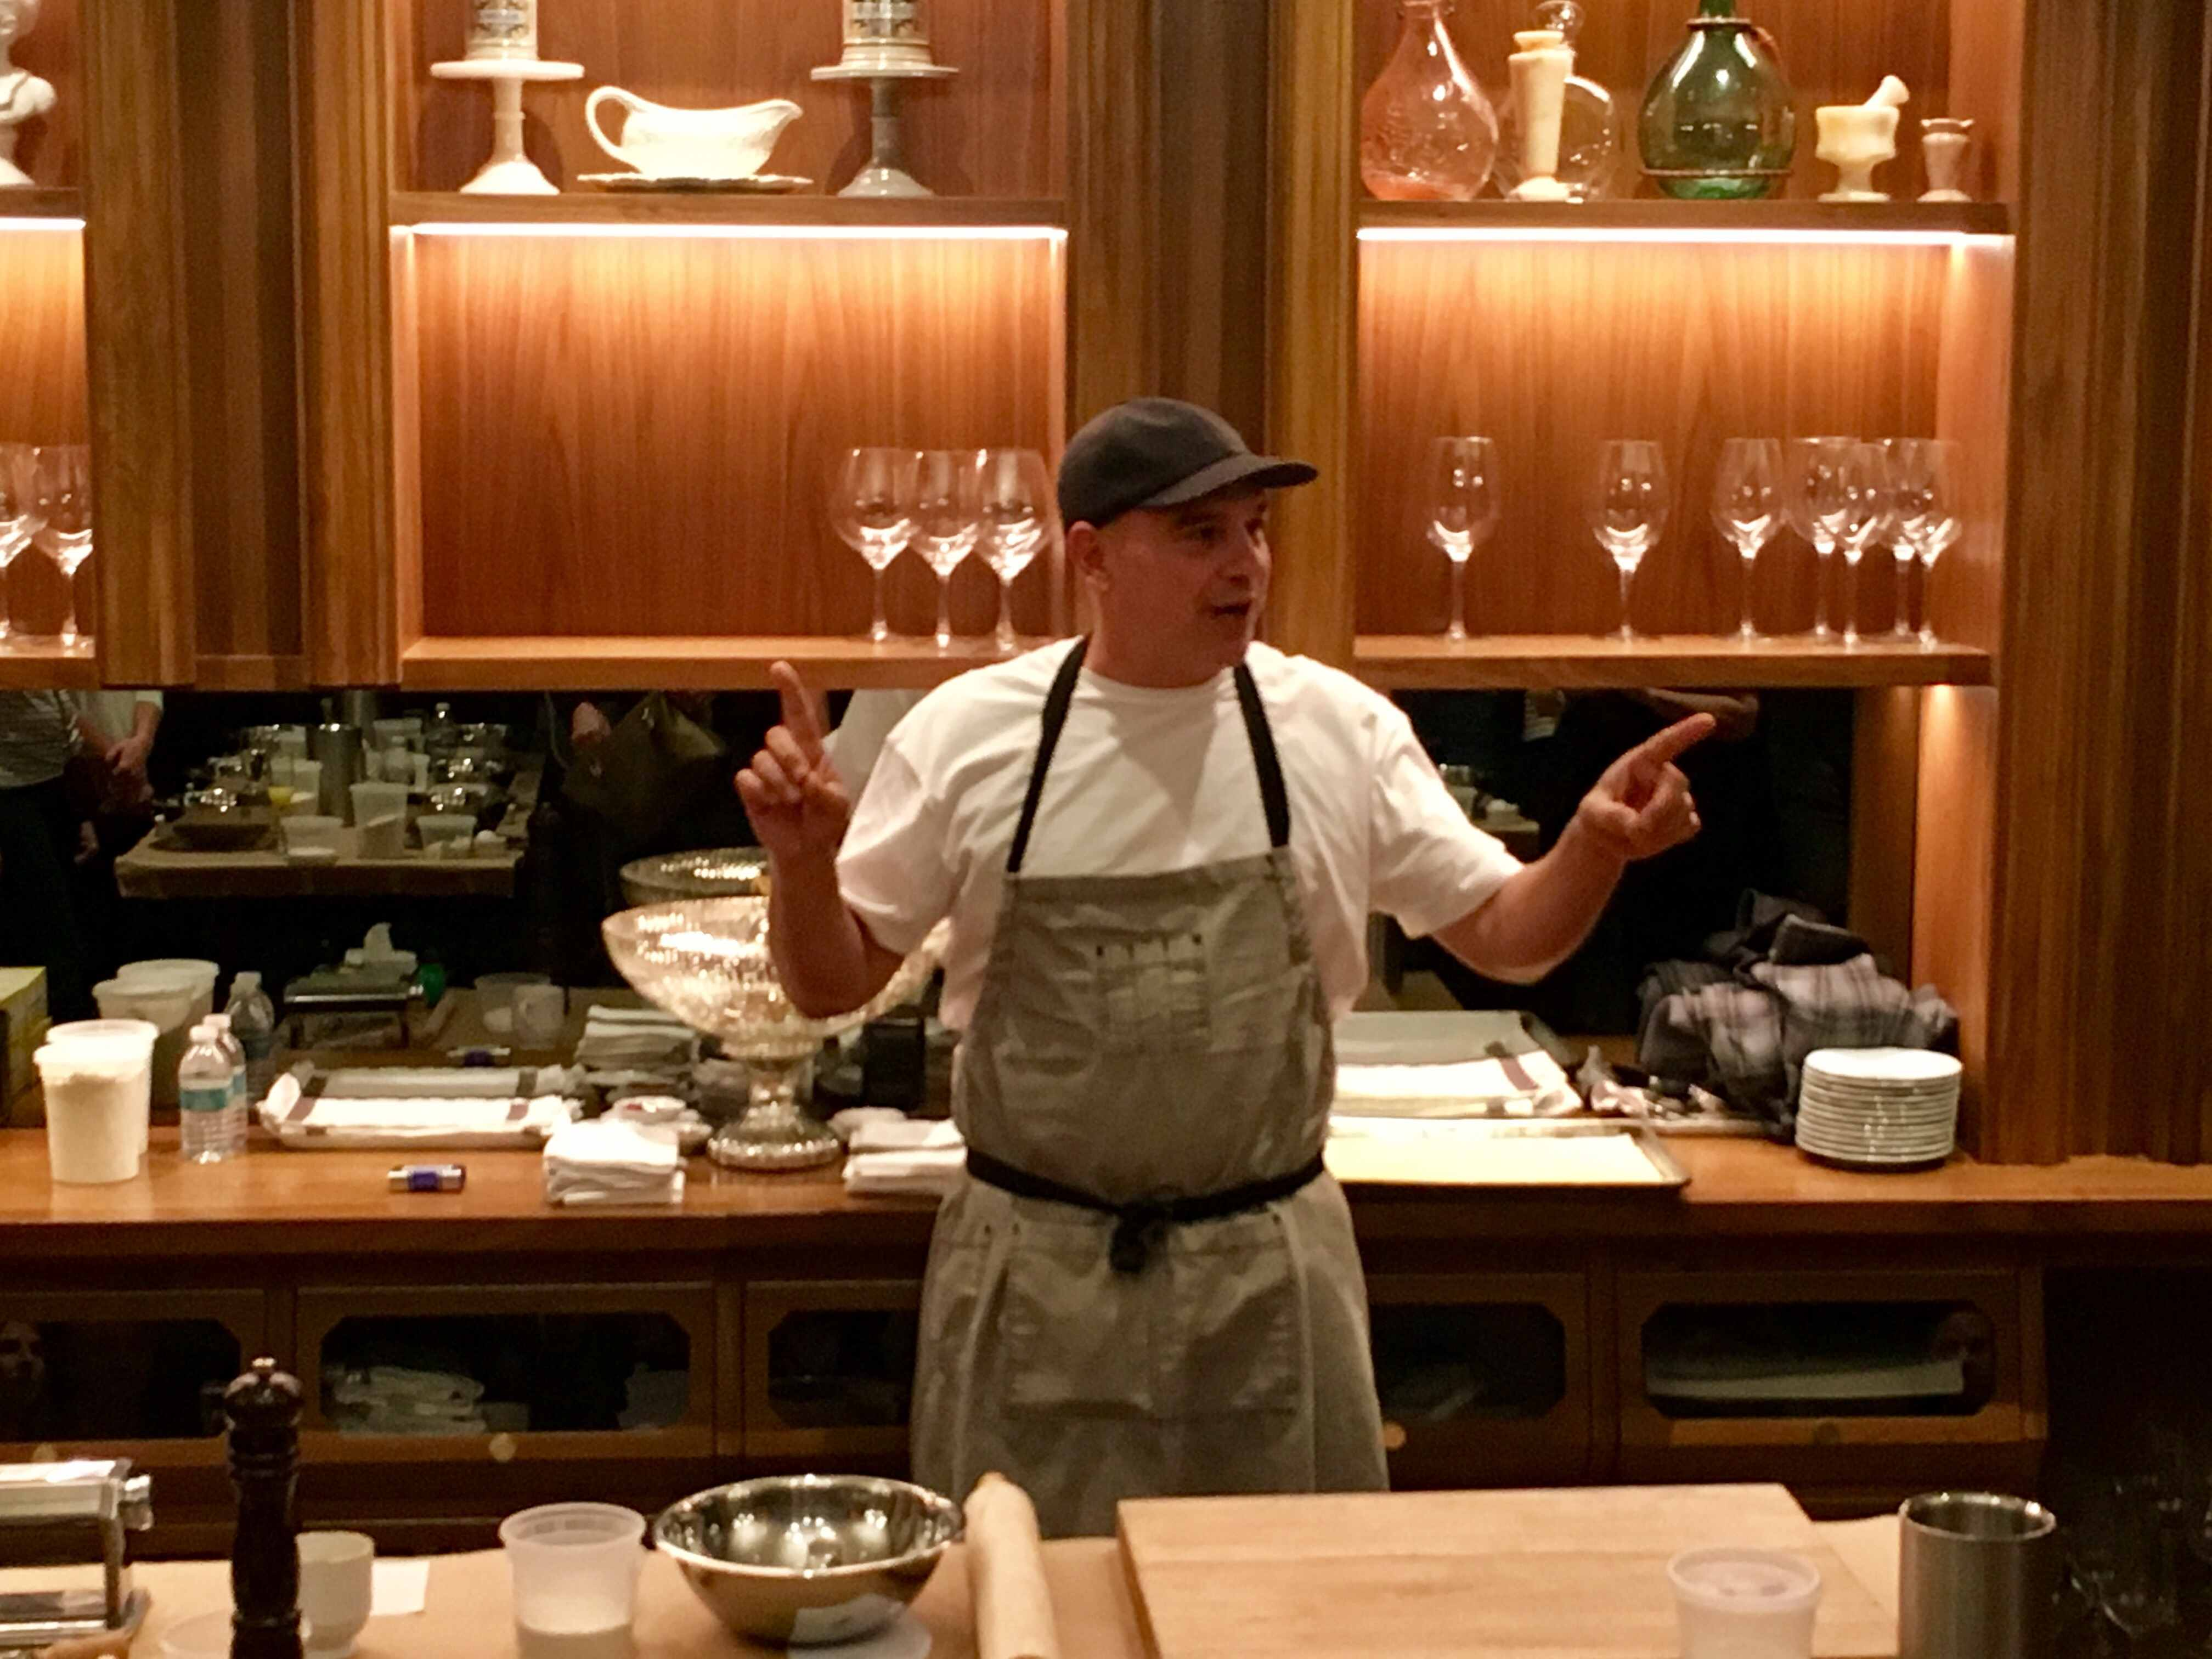 Mind Guests At Savor Borgata Experienced Hand Why Michael Symon Might Not Being Called A An Interactive At Michael Symon Archives Borgata Blog Borgata Hotel Casino Spa nice food Michael Symon Recipes